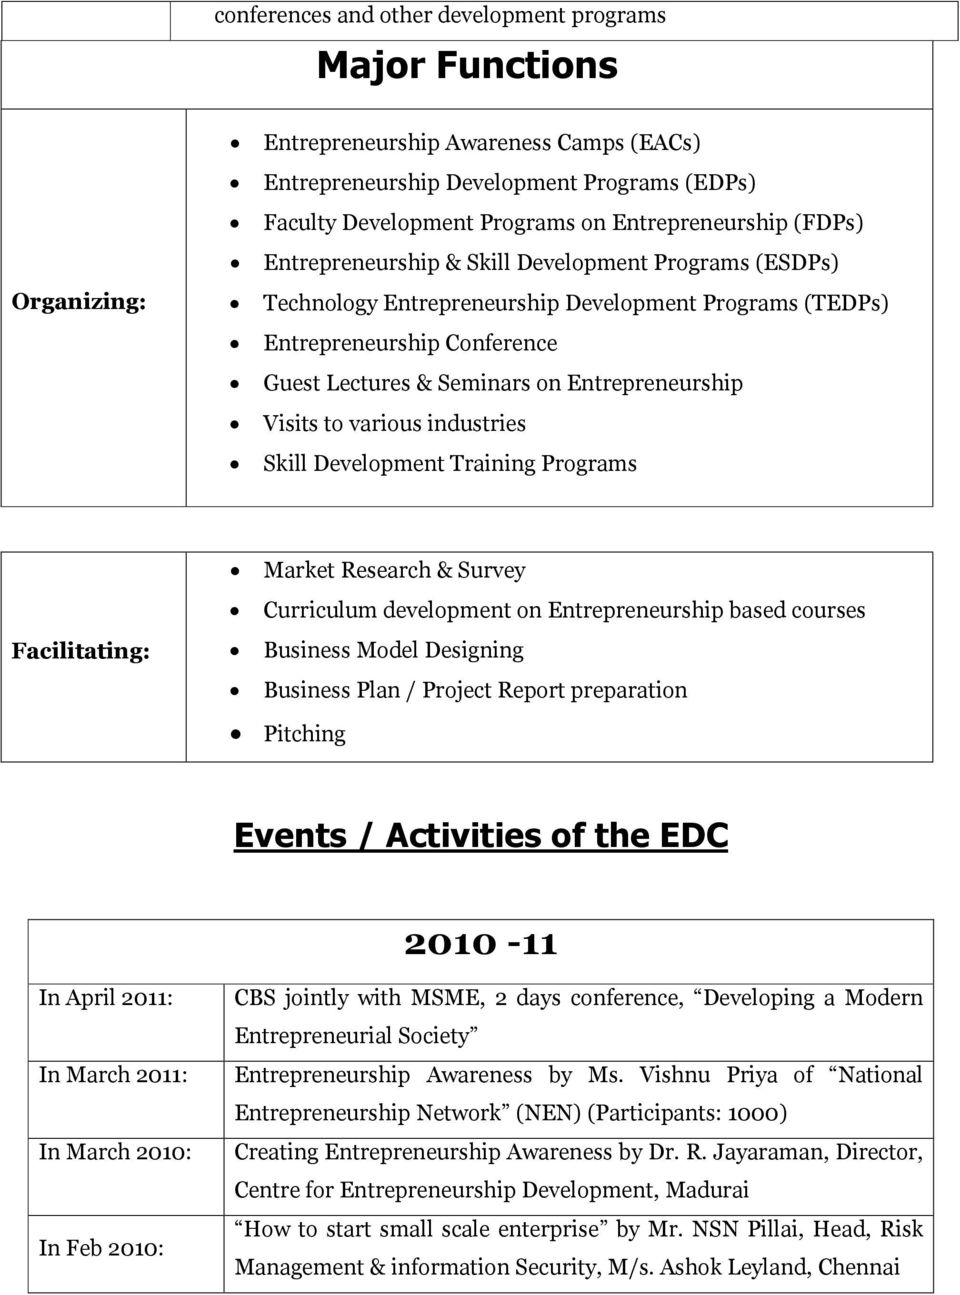 Entrepreneurship Visits to various industries Skill Development Training Programs Facilitating: Market Research & Survey Curriculum development on Entrepreneurship based courses Business Model